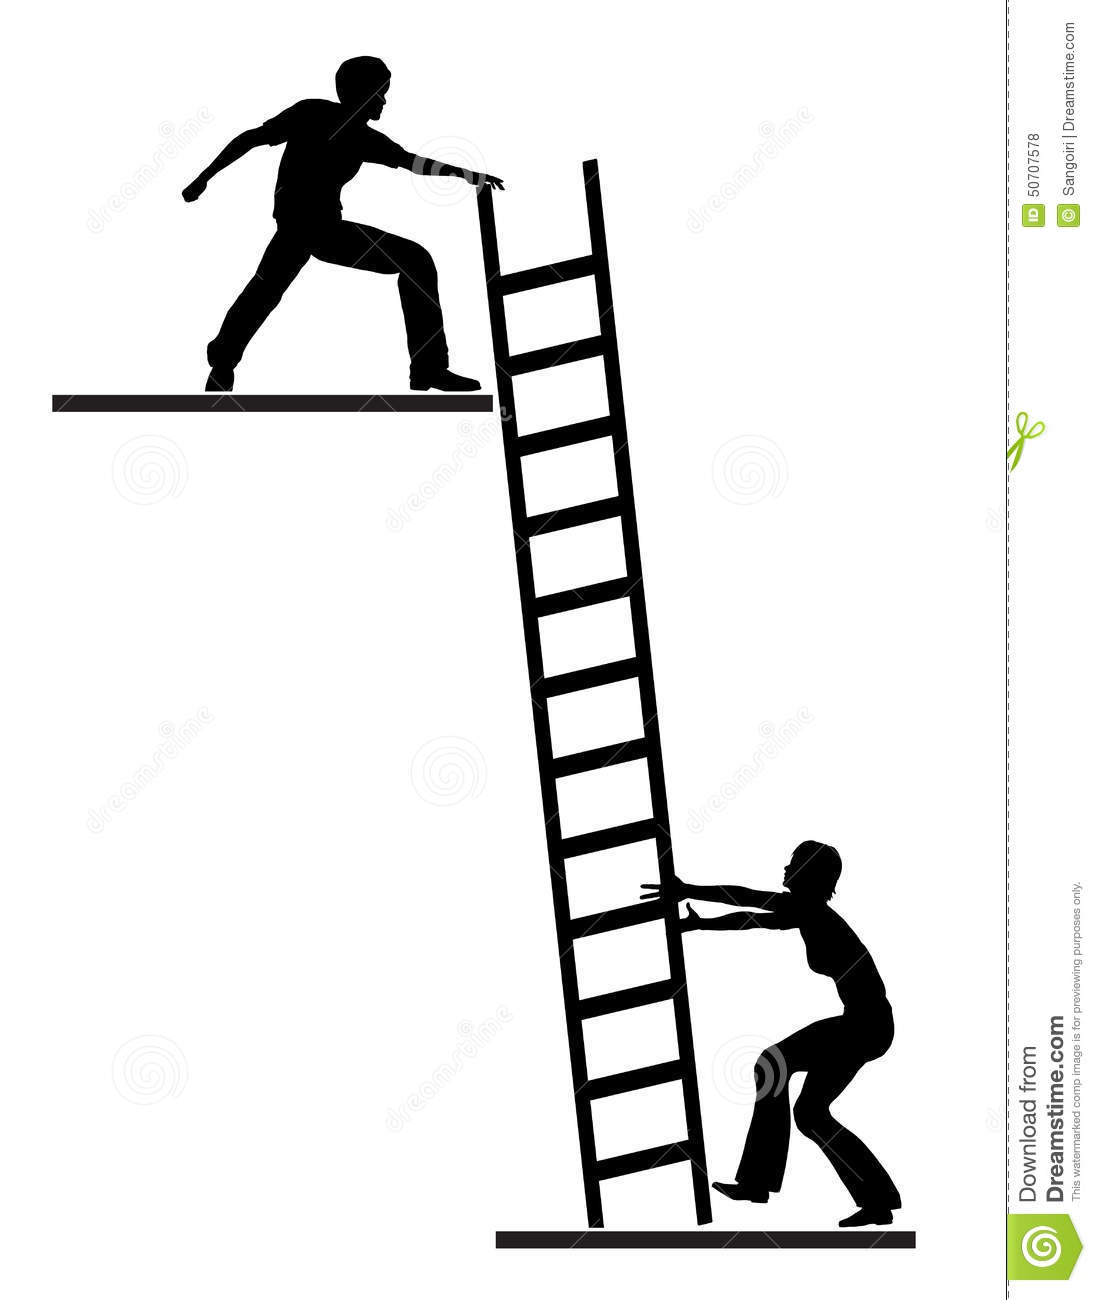 Coach assisting person to climb the ladder of success mr no pr yes 2